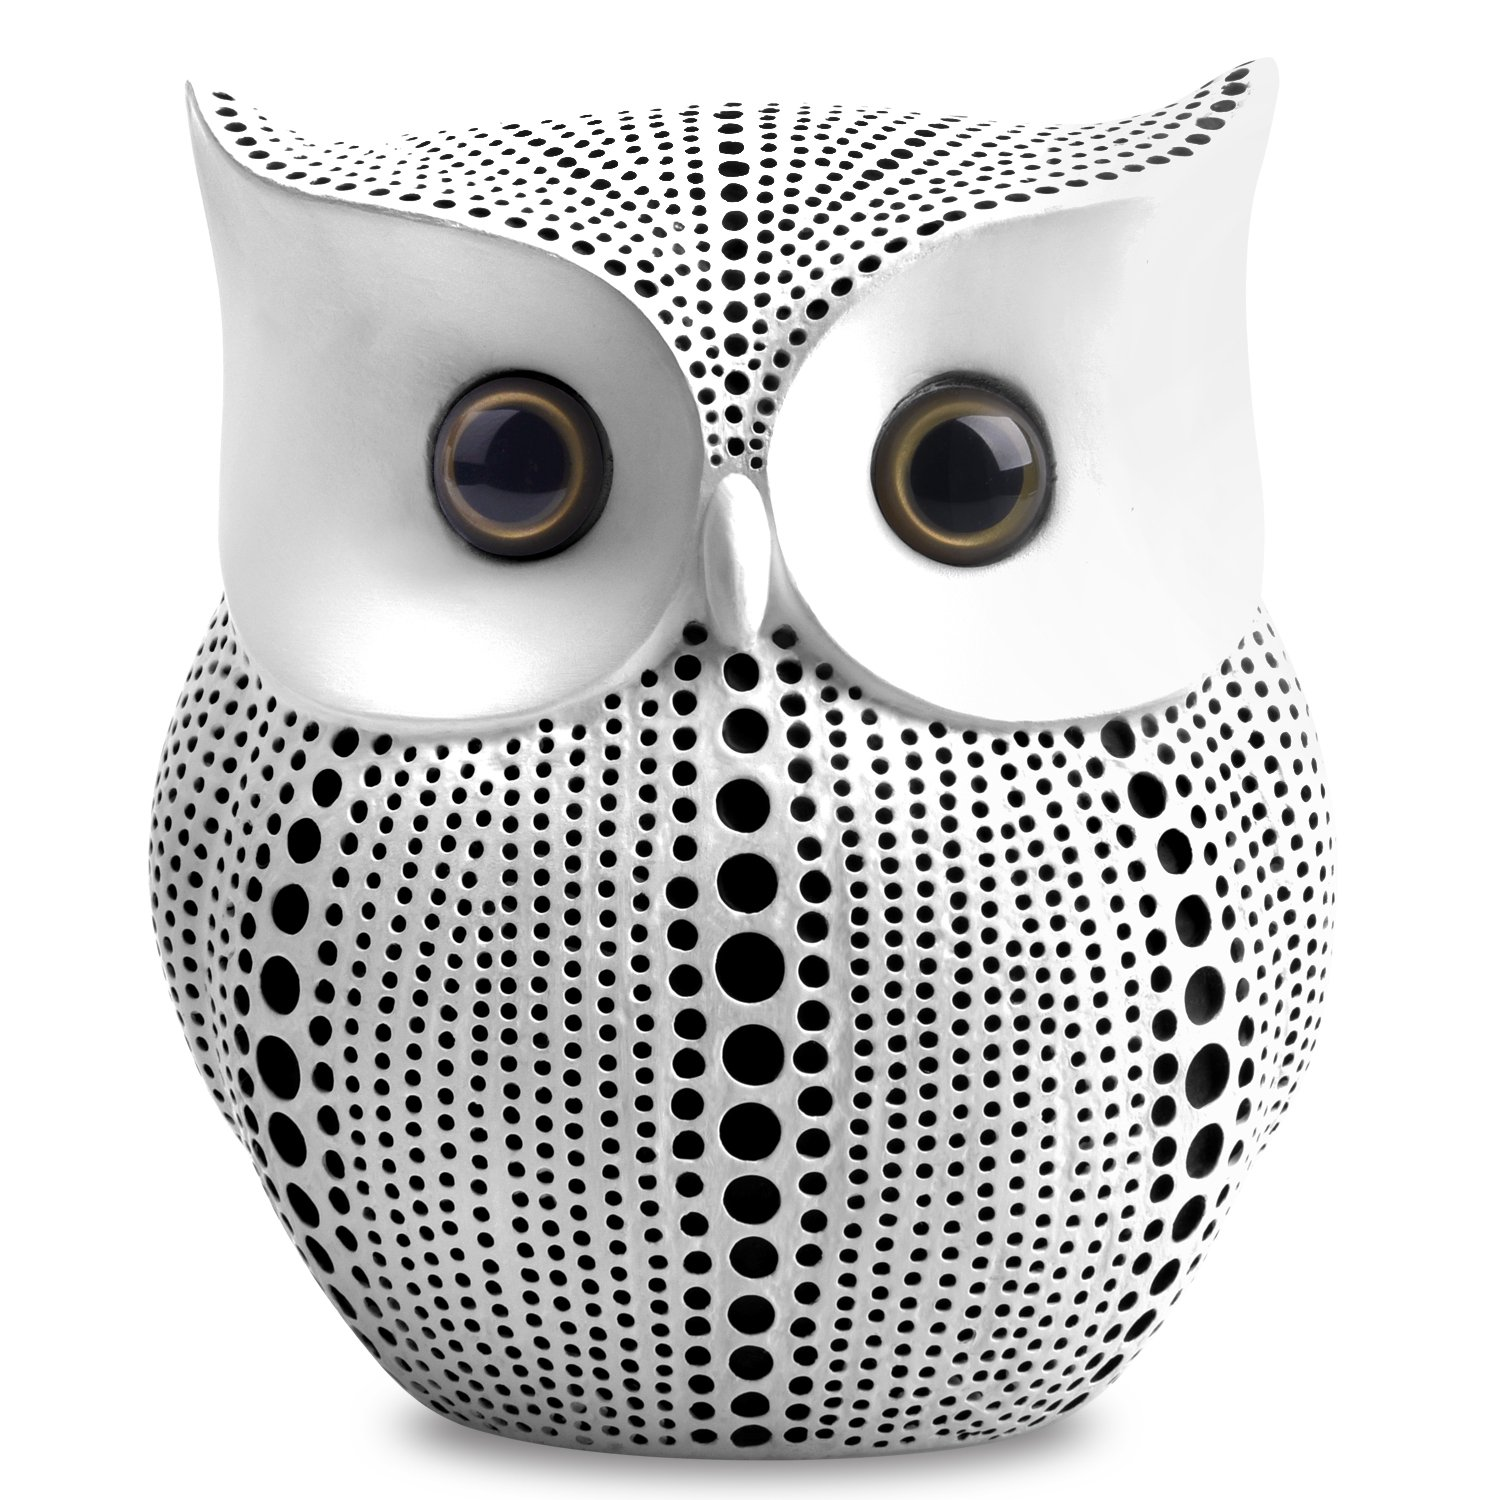 APPS2Car Crafted Owl Statue (White) Small Animal Figurines For Home Decor,  BFF For Owl Bird Lovers, ...